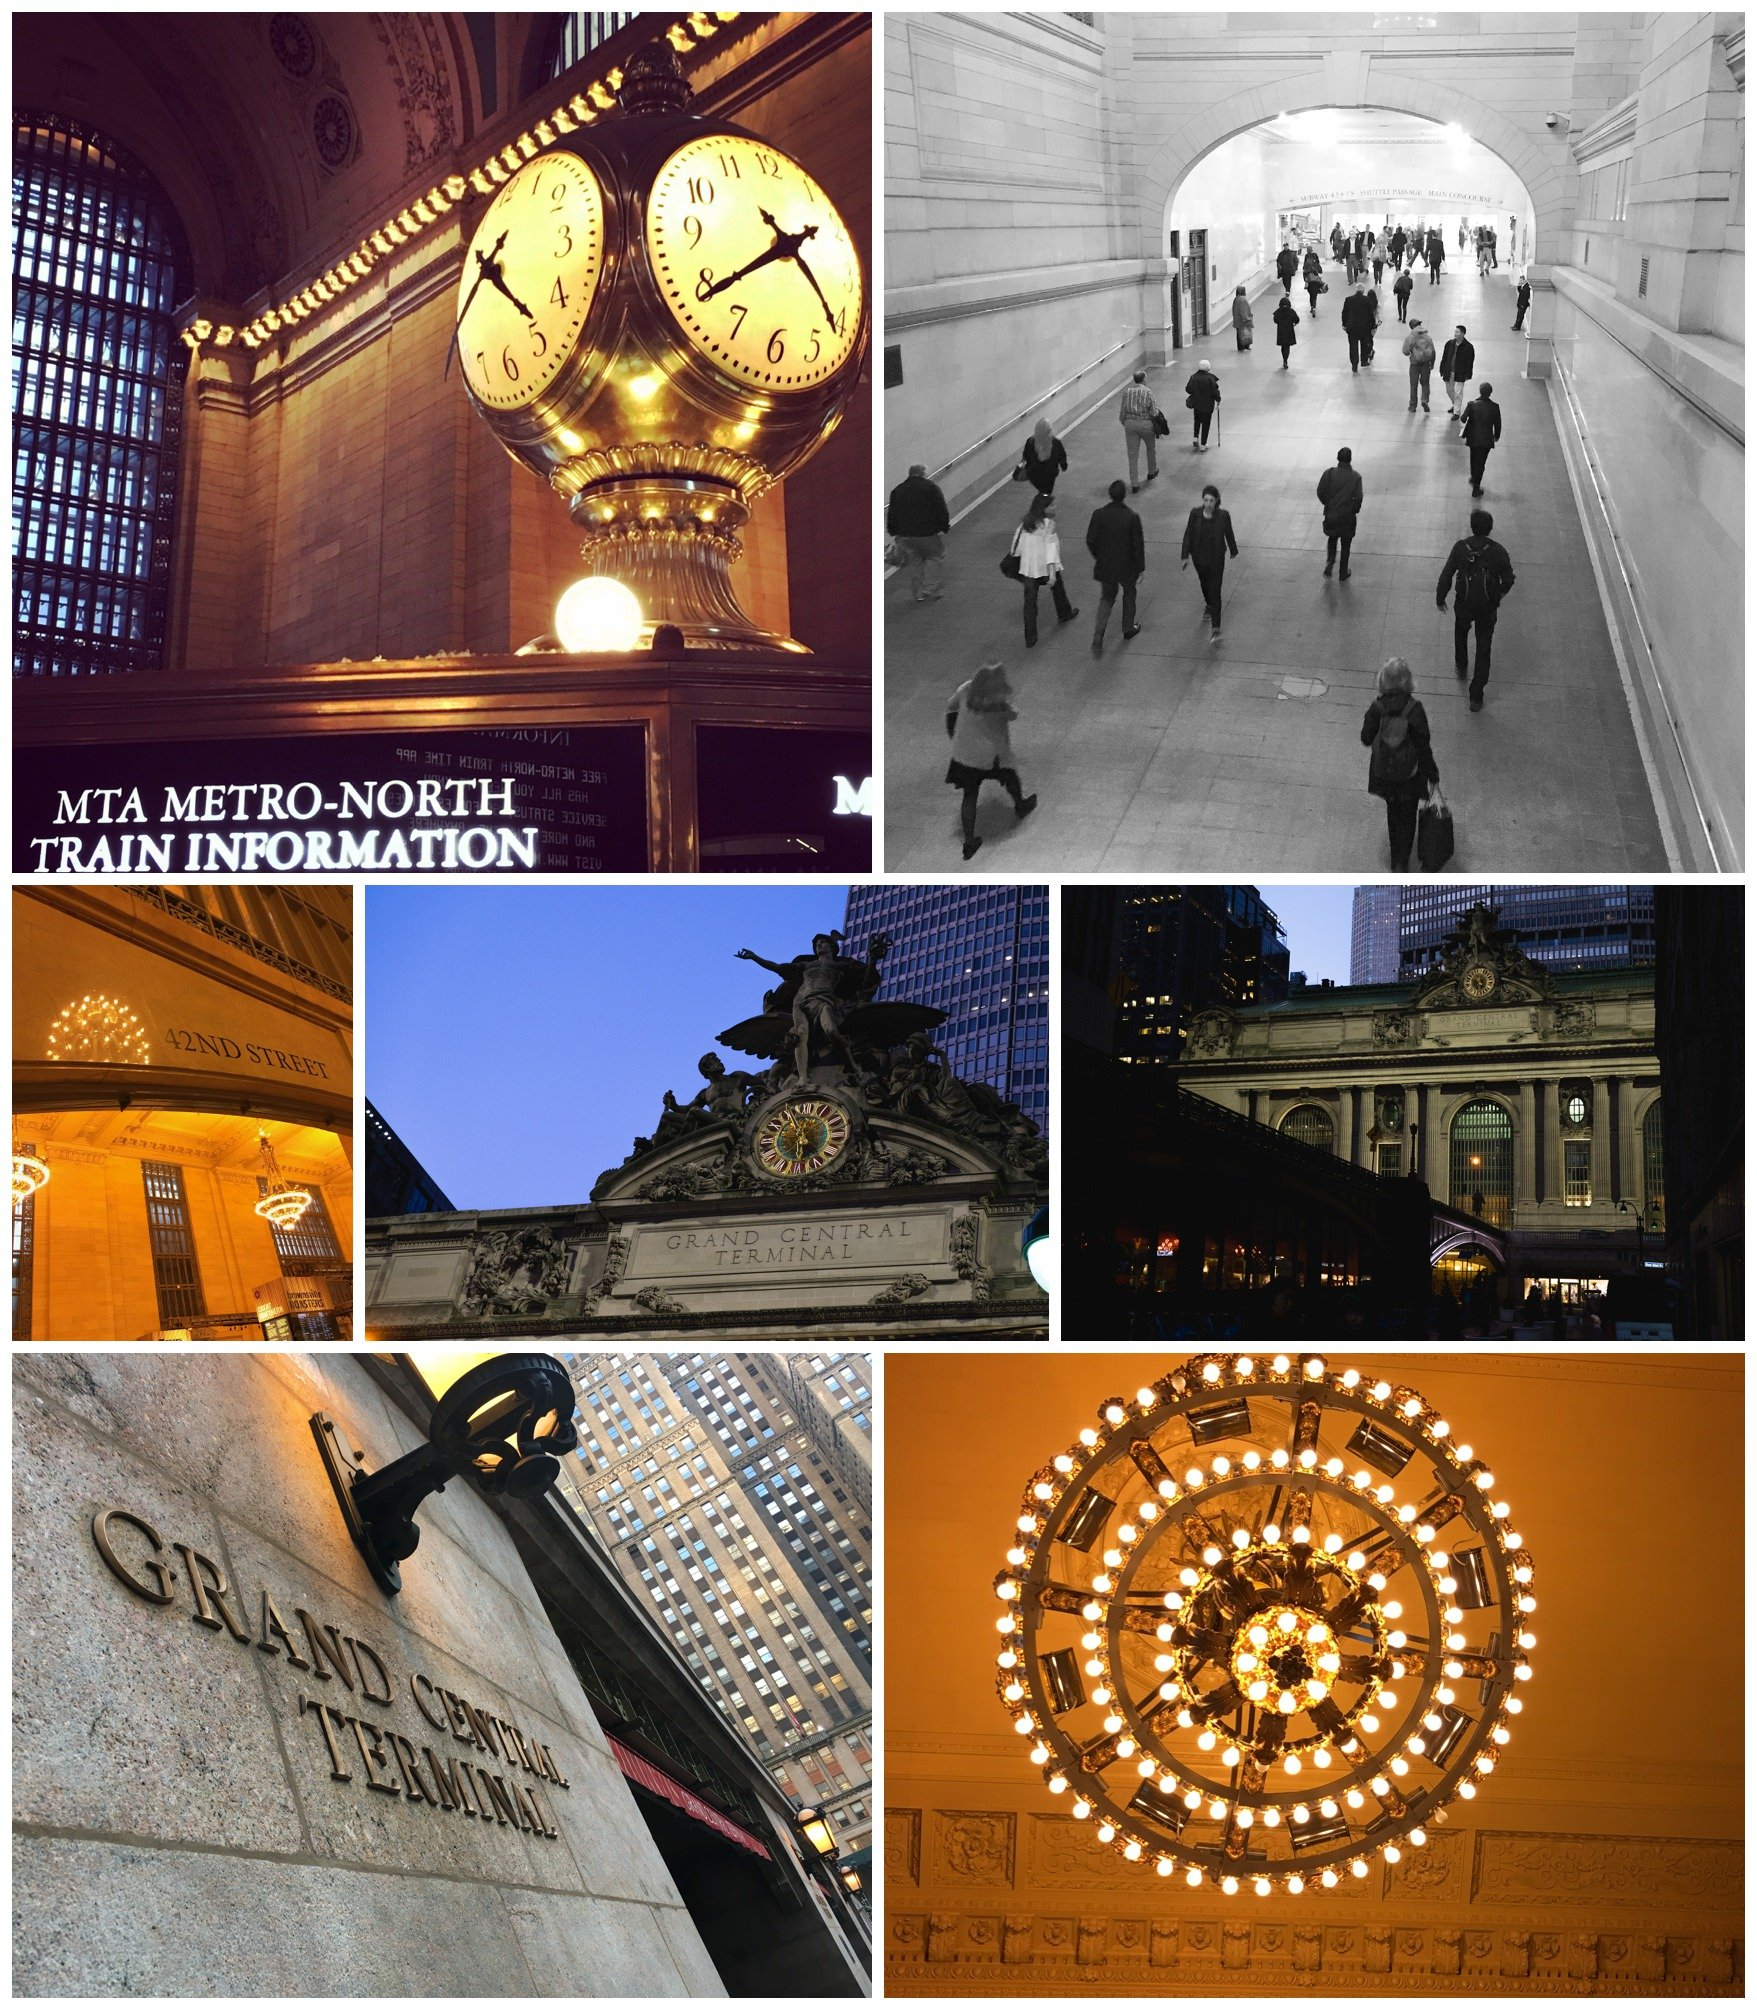 a montage of pictures of grand central station in new york city including the clock, people, chandeliers and an outside view